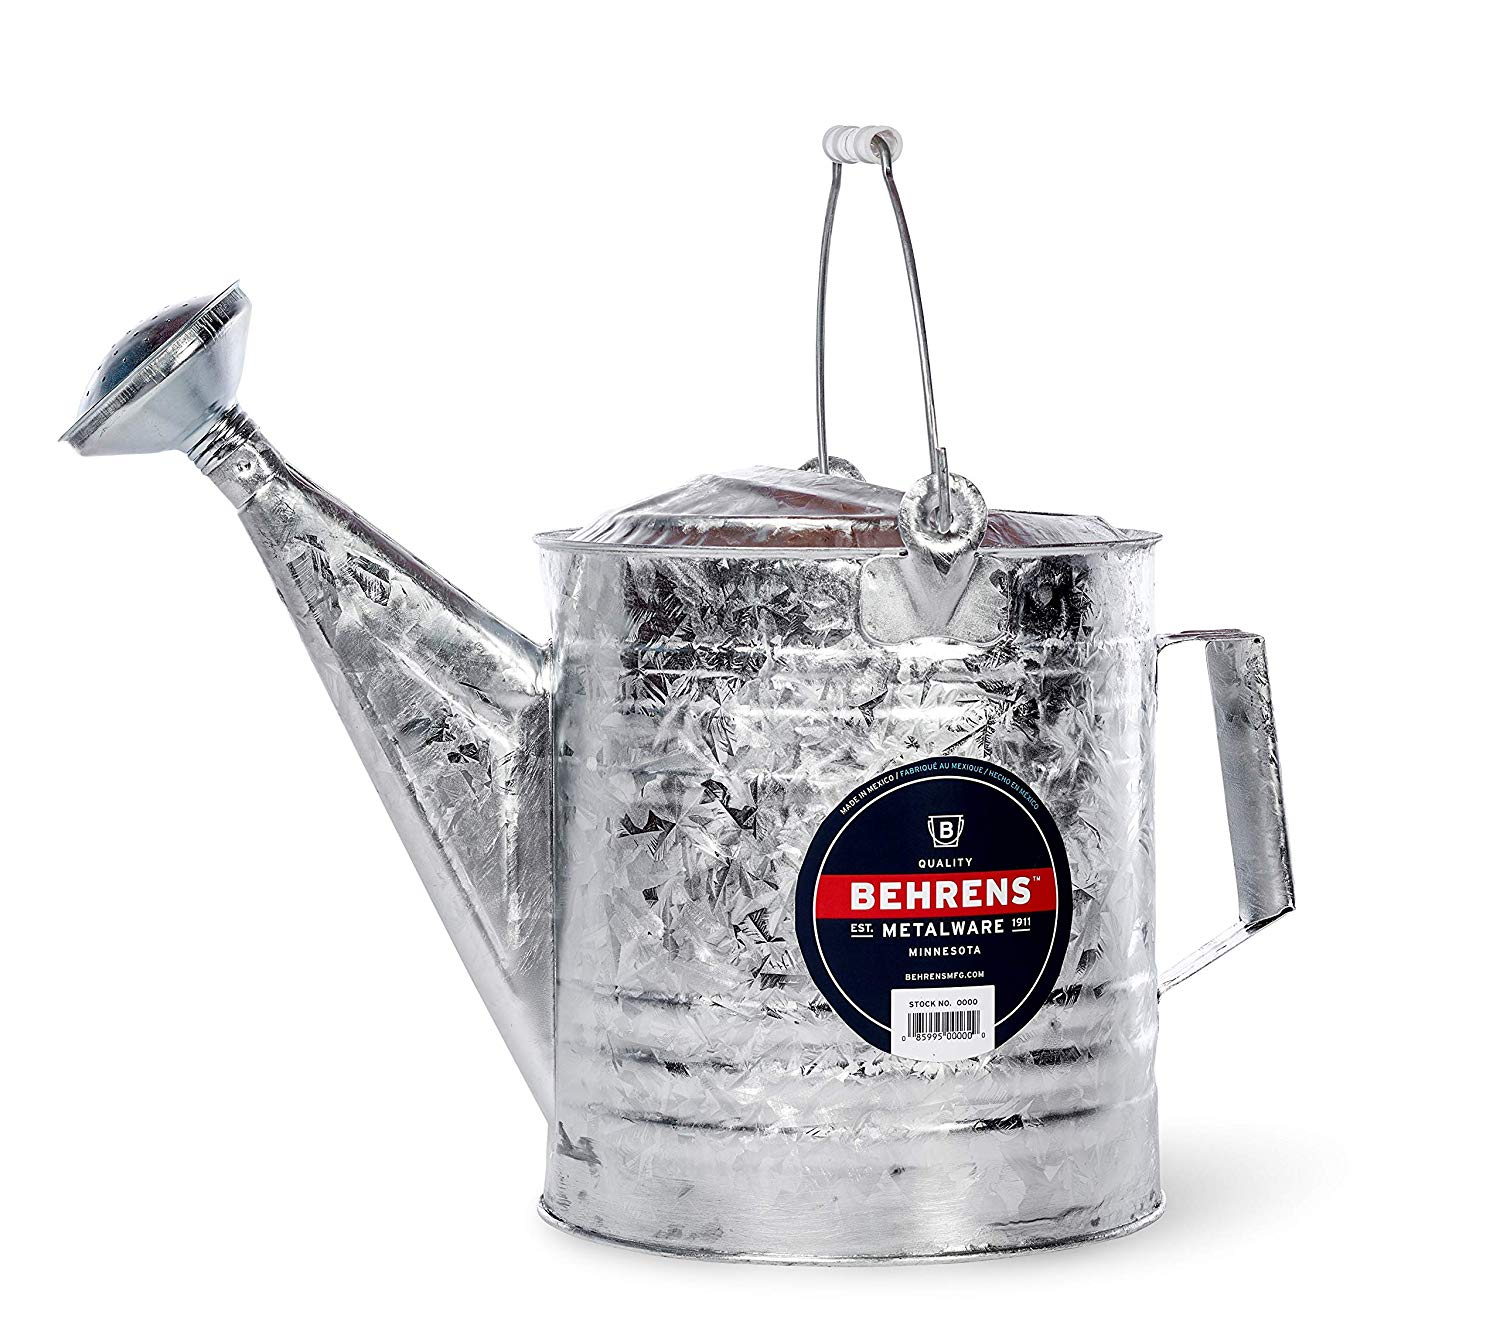 Behrens 210 2-1/2-gallon Steel Watering Can, Silver: